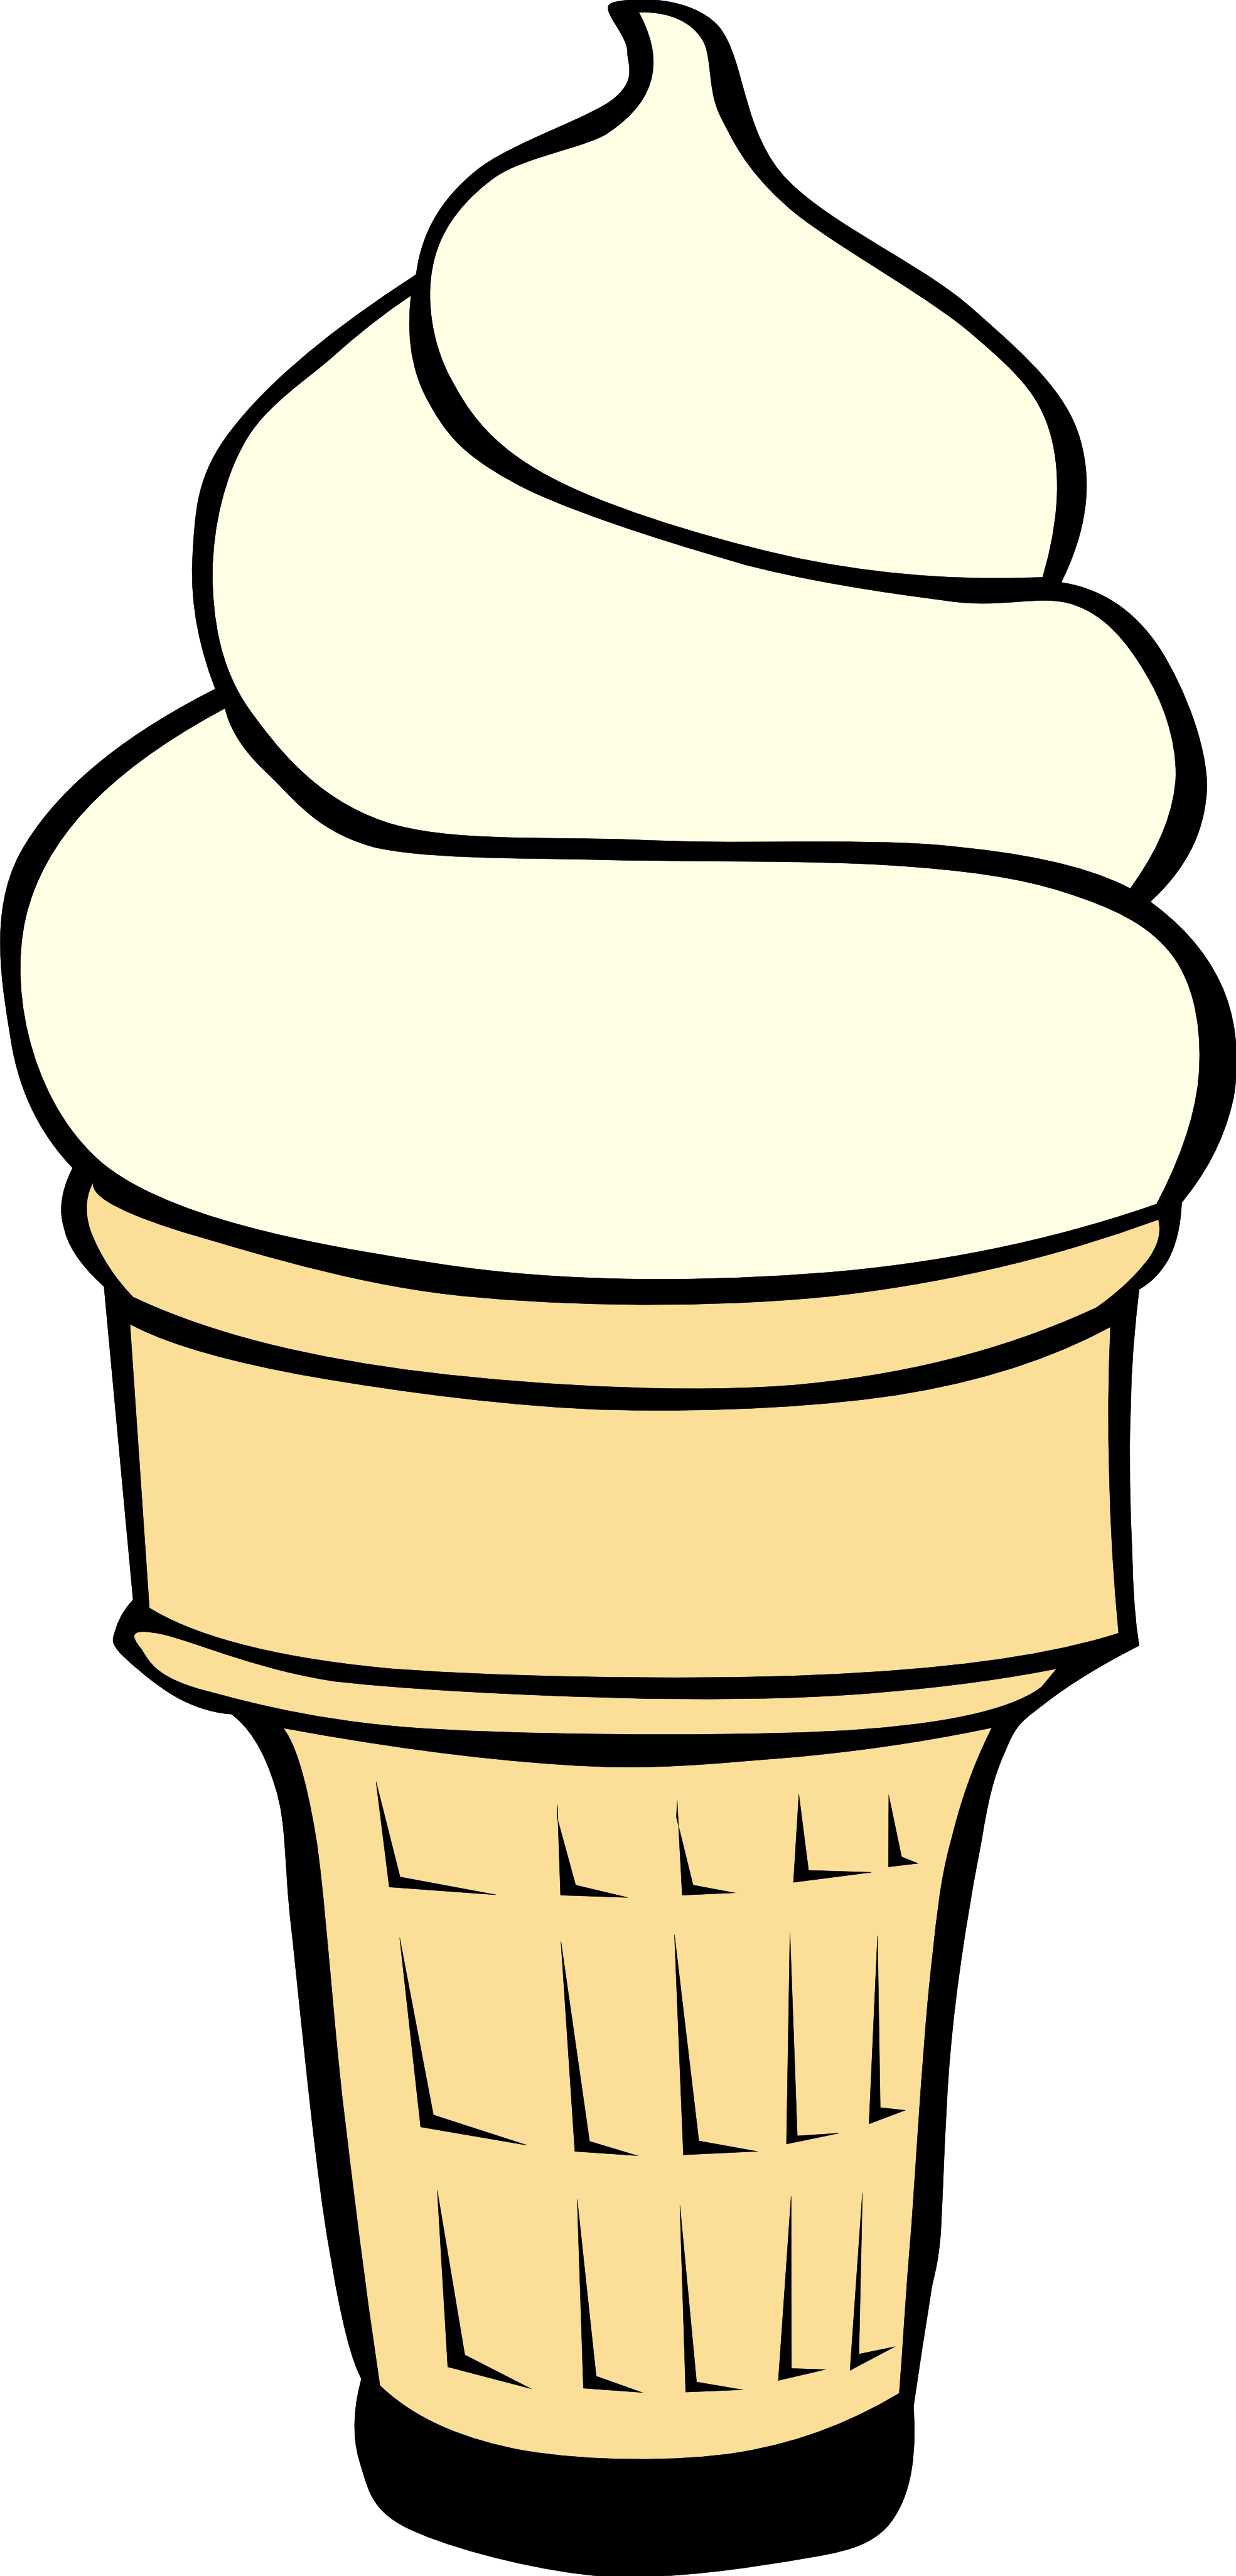 ice%20cream%20cone%20clipart